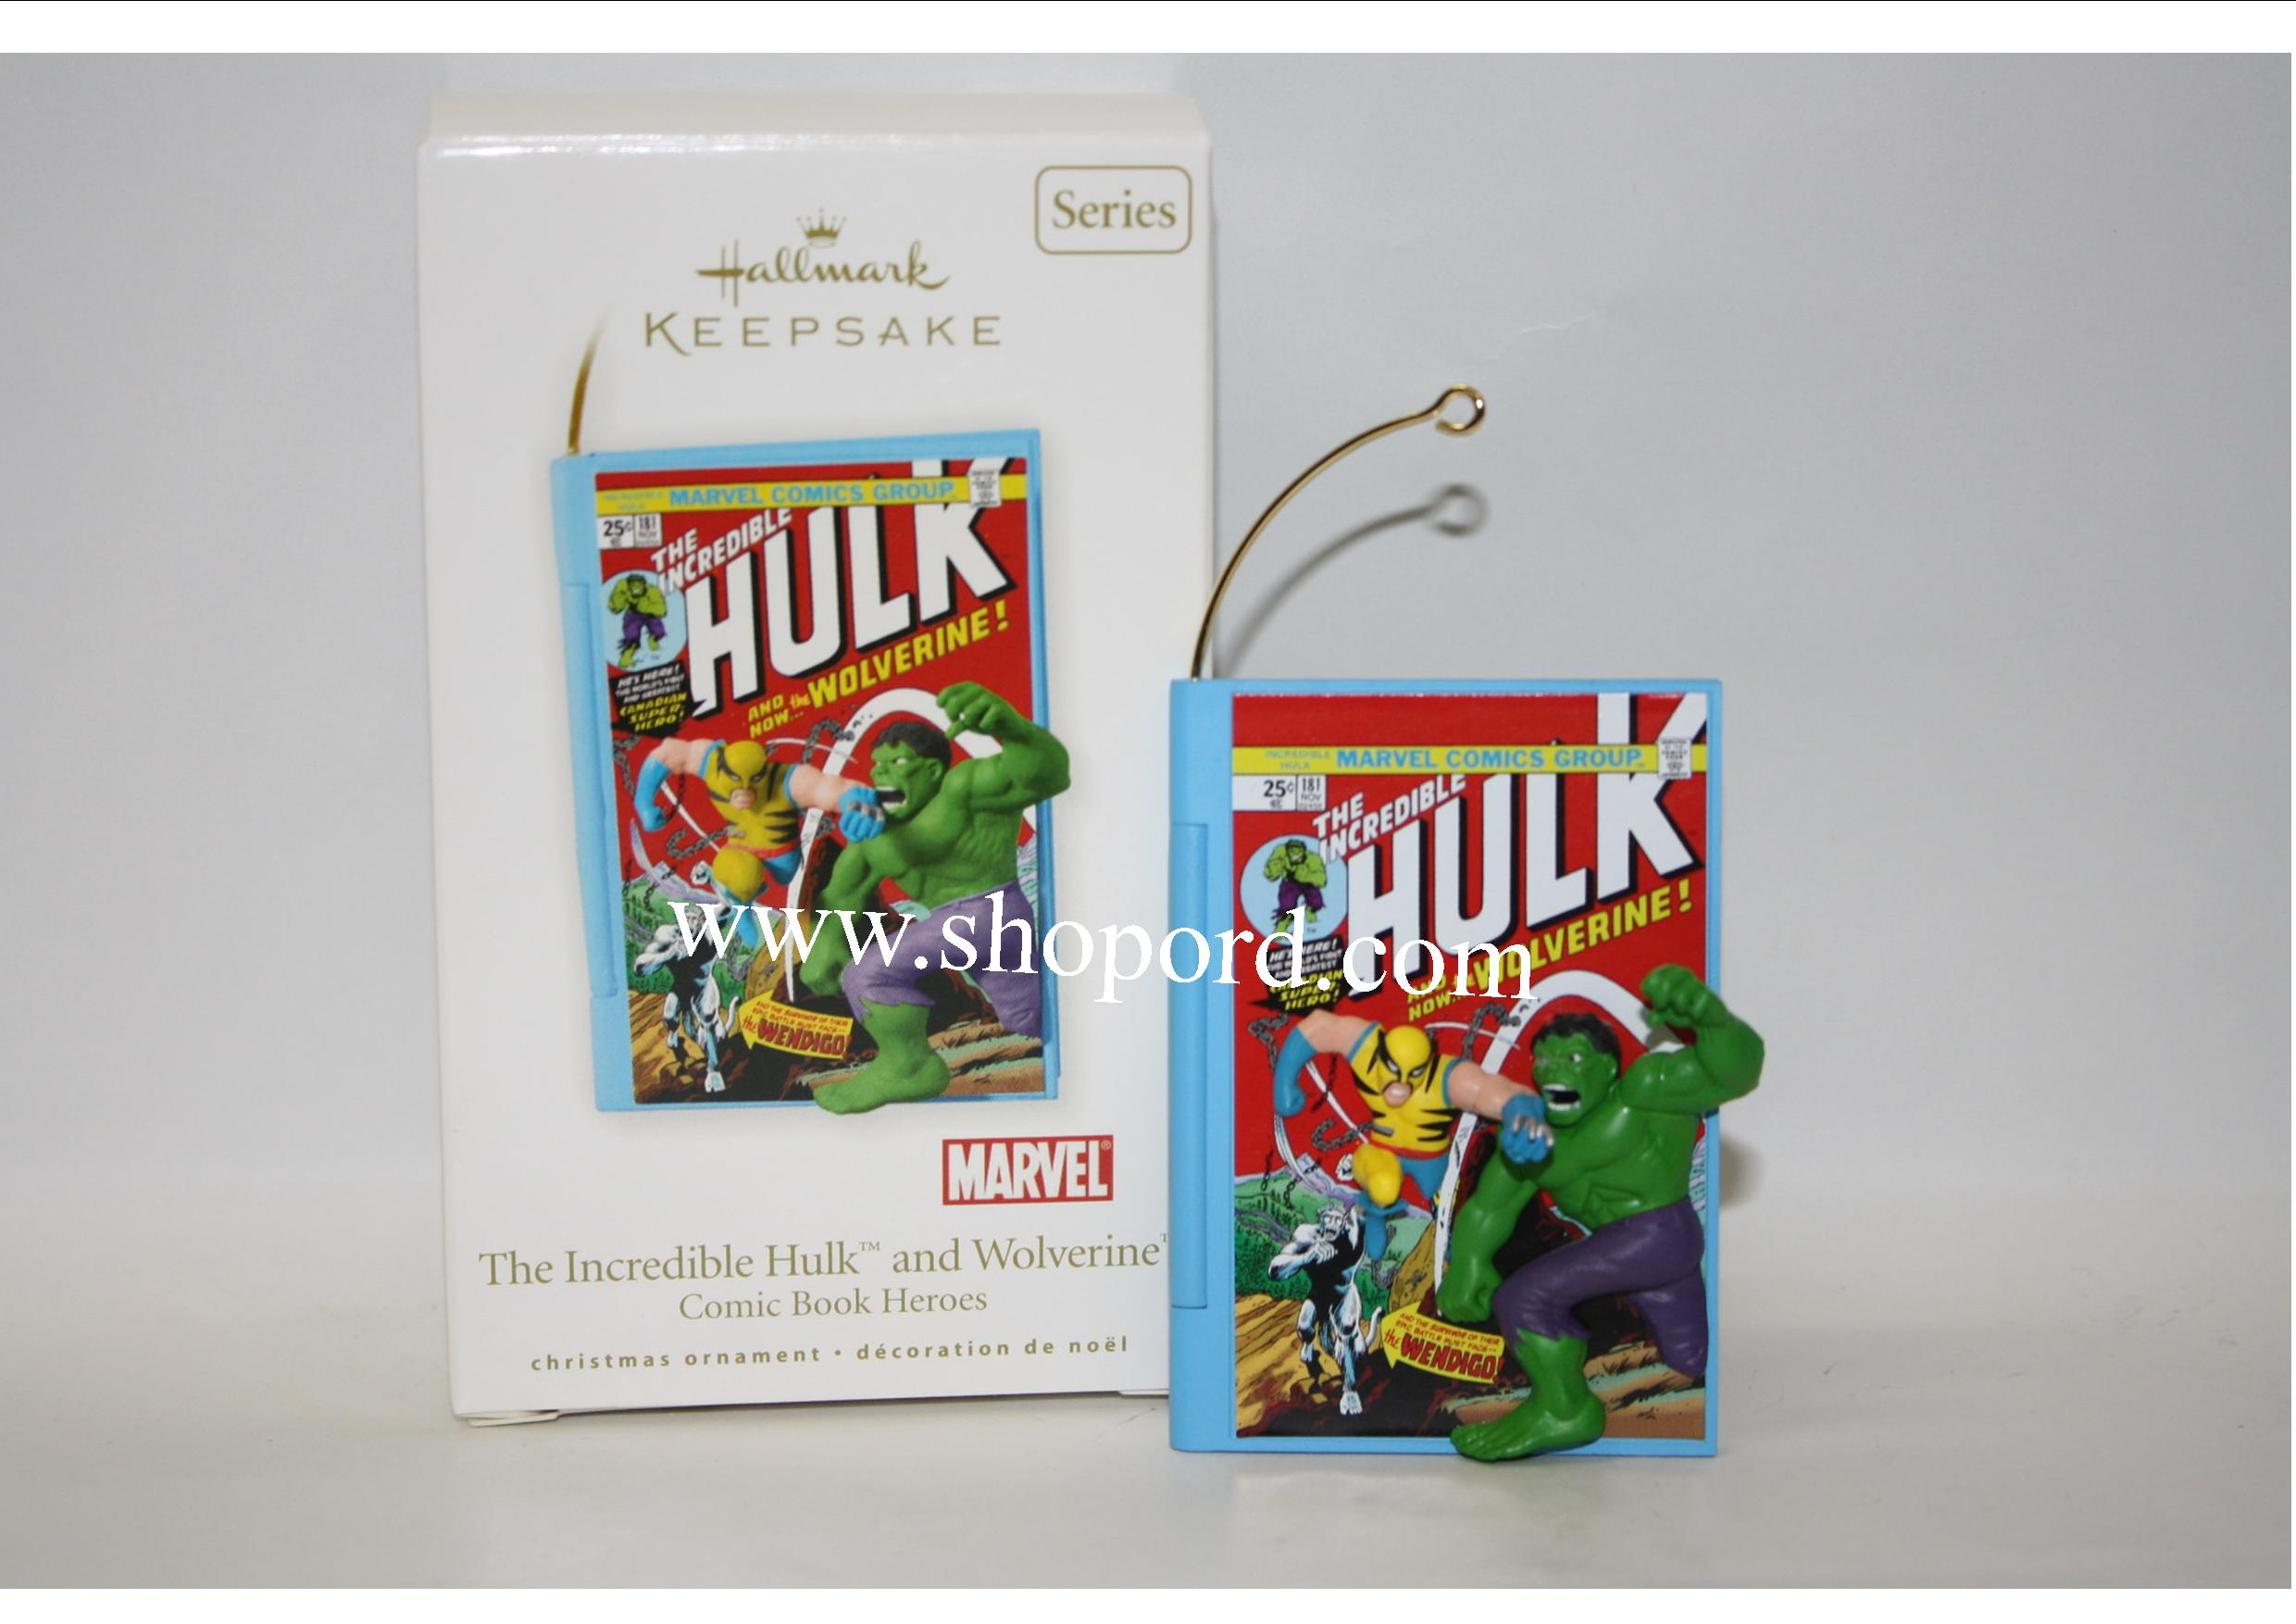 Hallmark 2010 The Incredible Hulk and Wolverine Comic Book Heroes Ornament 3rd in the Series QX8453